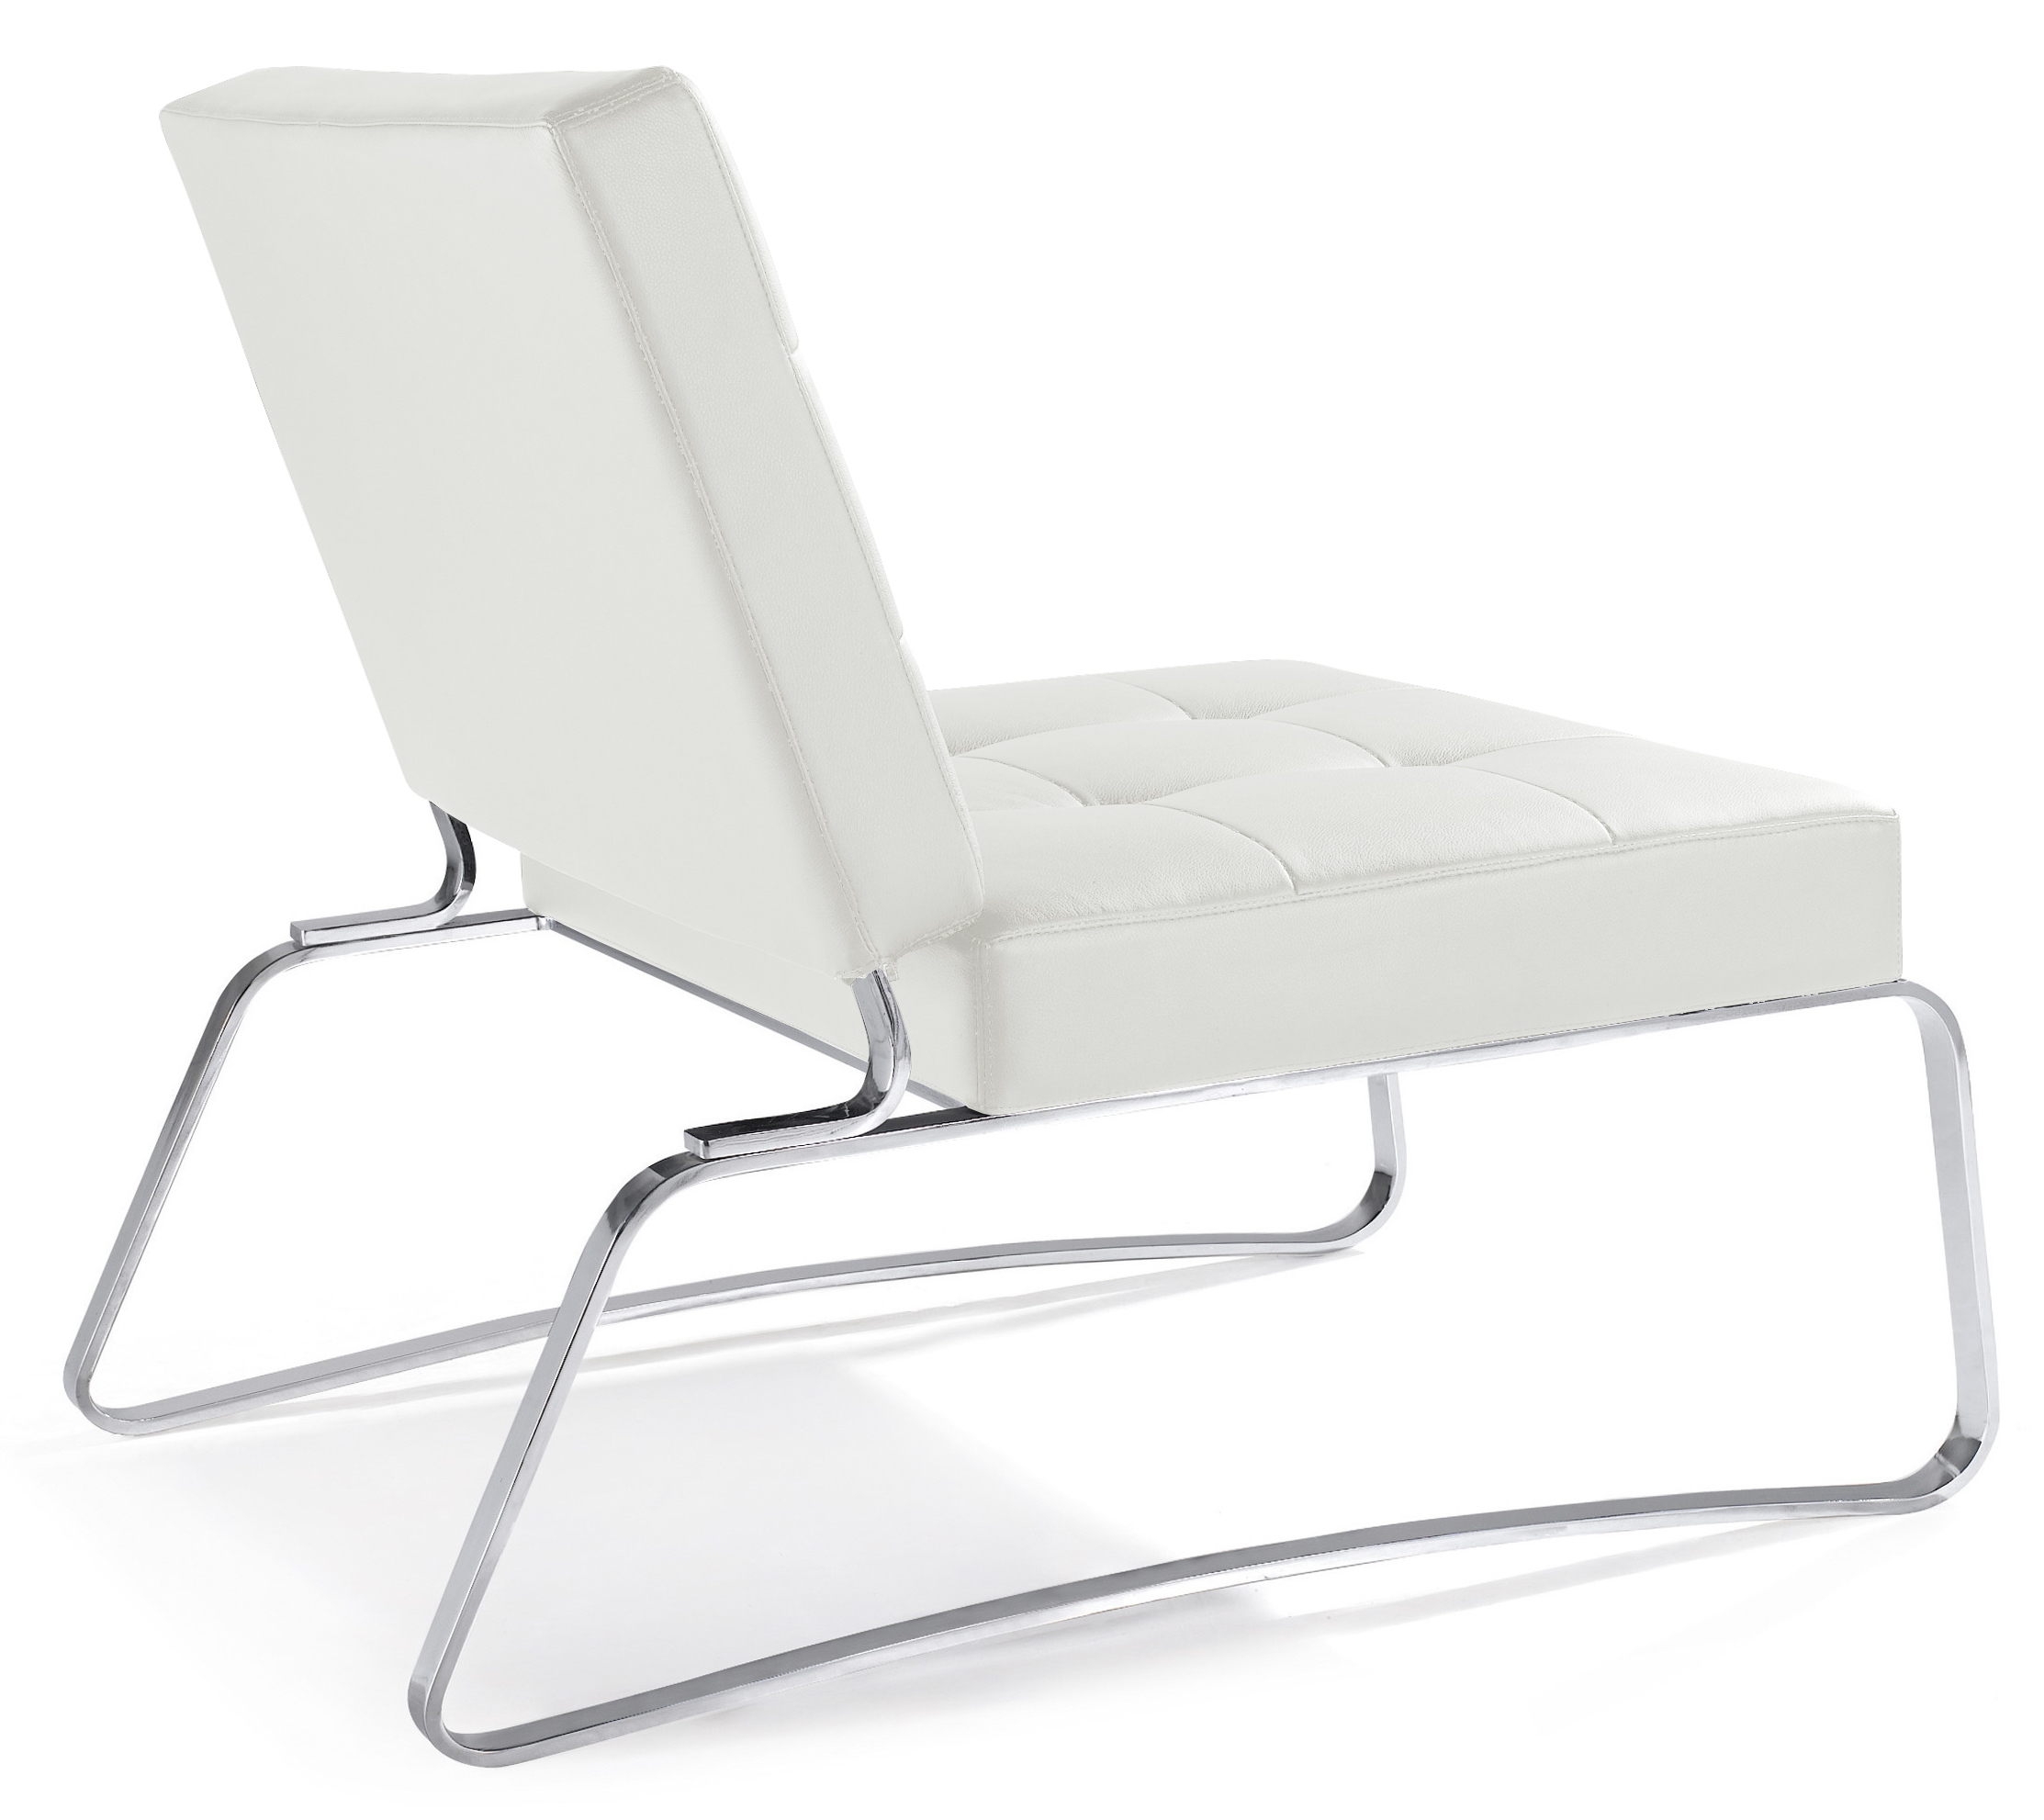 hermes-lounge-chair-white-color.jpg